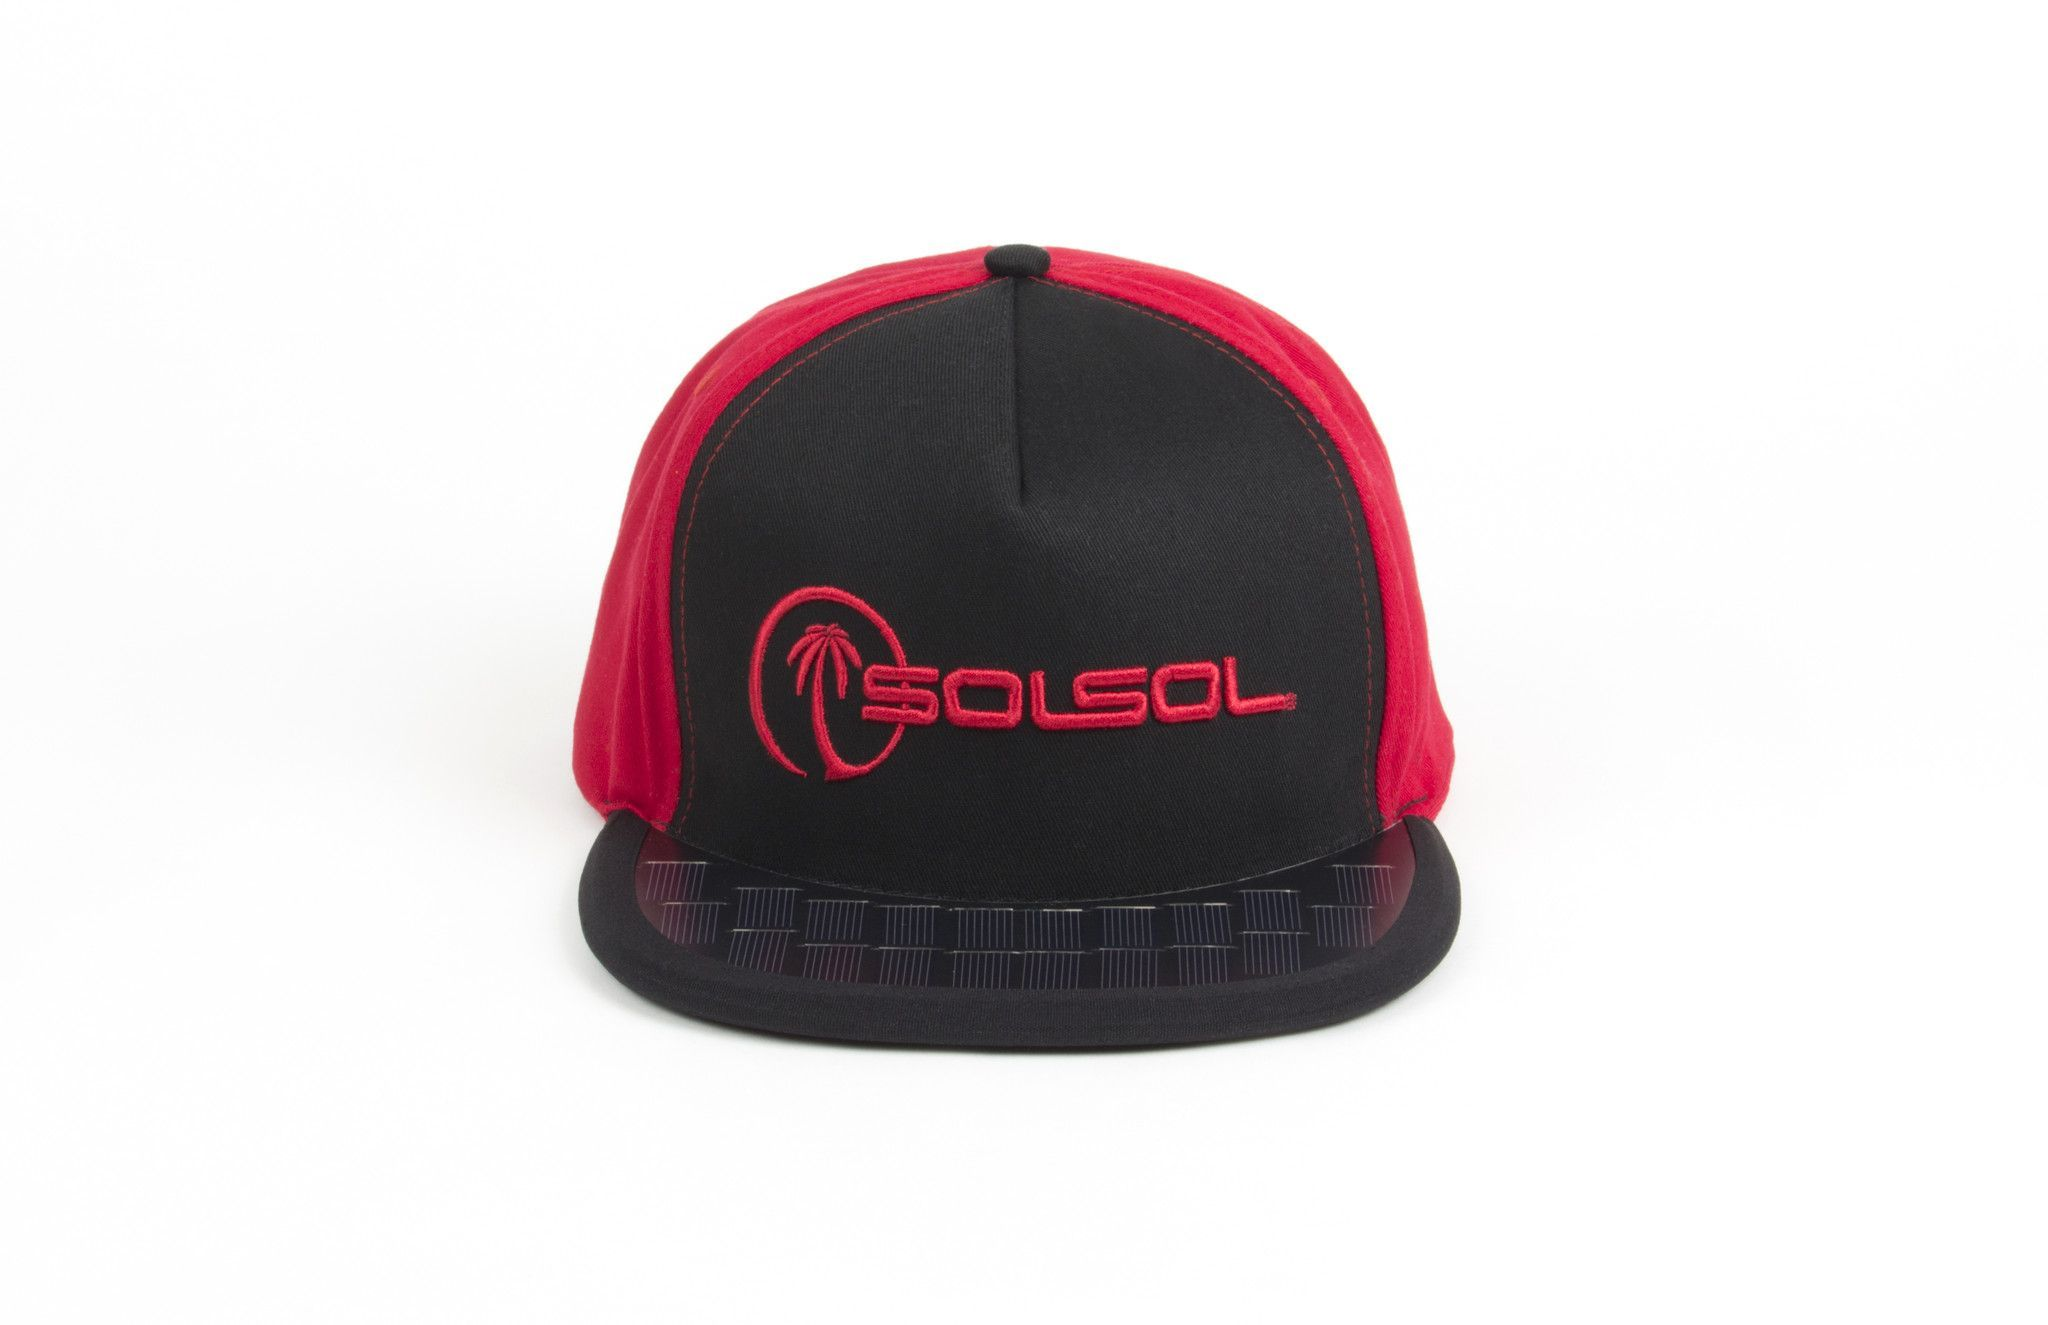 Solsol 5 Panel Snapback Flat Brim Solar Charger Hat In Black Red New Innovative Wearable Technology It S An Smartphone Charger Black And Red Iphone Charger